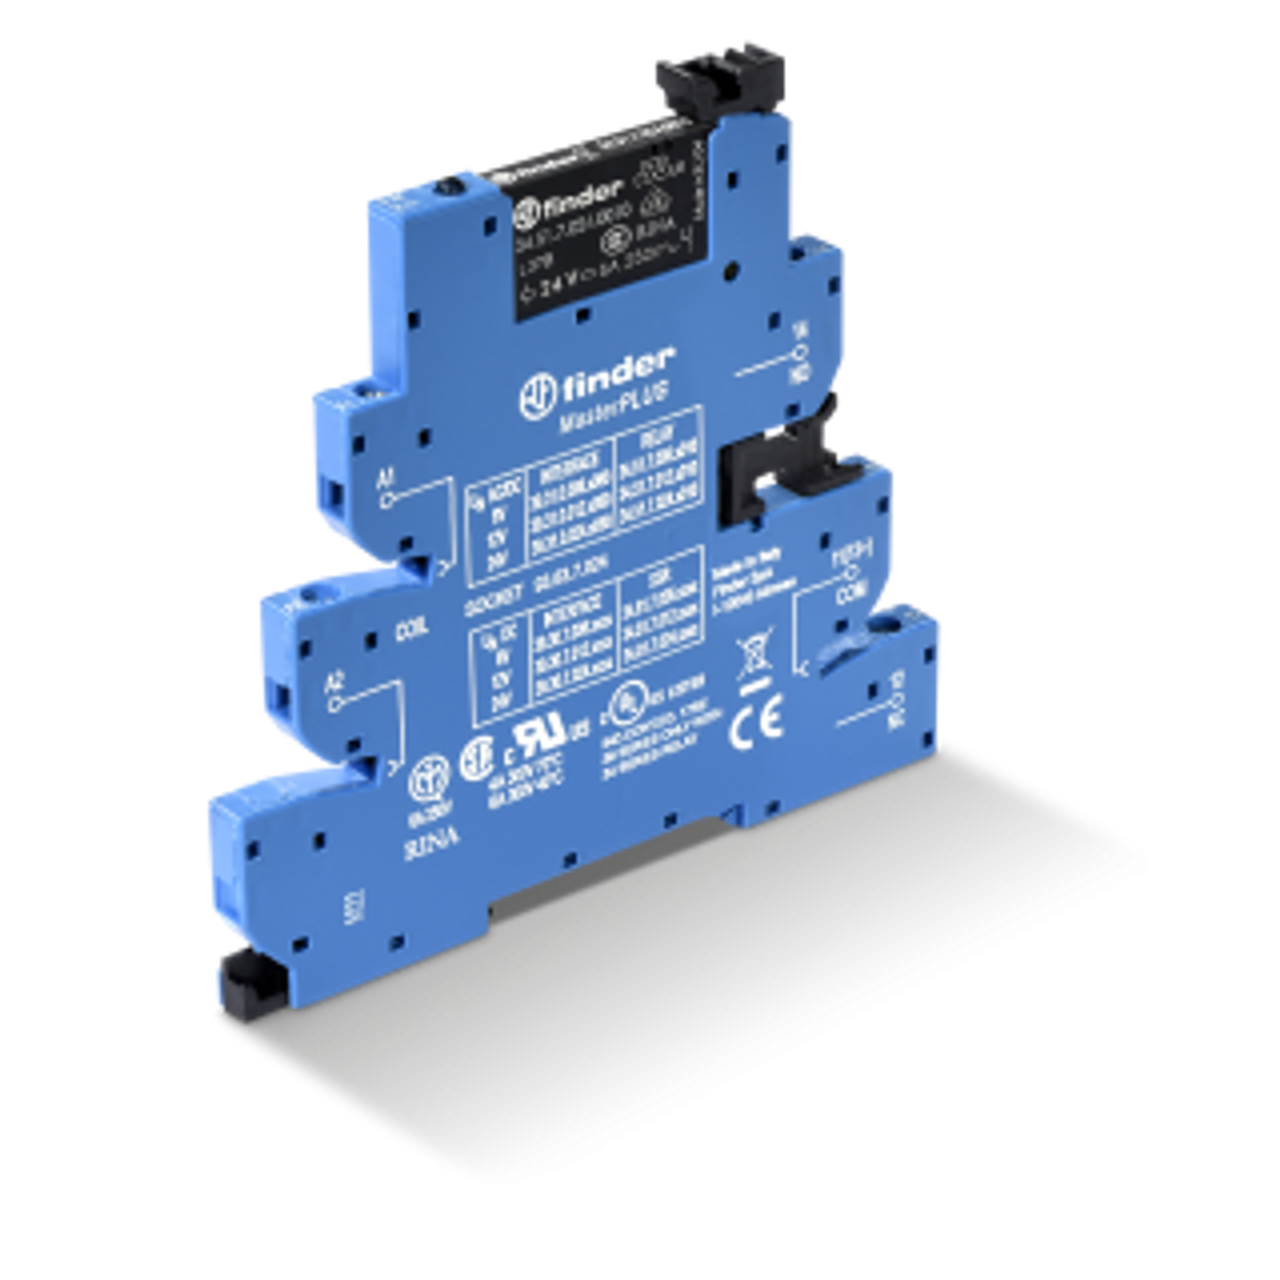 EMR-MasterPLUS, SPDT 6A, 125V AC leakage suppression circuit coil, AgNi contact, screw terminal socket